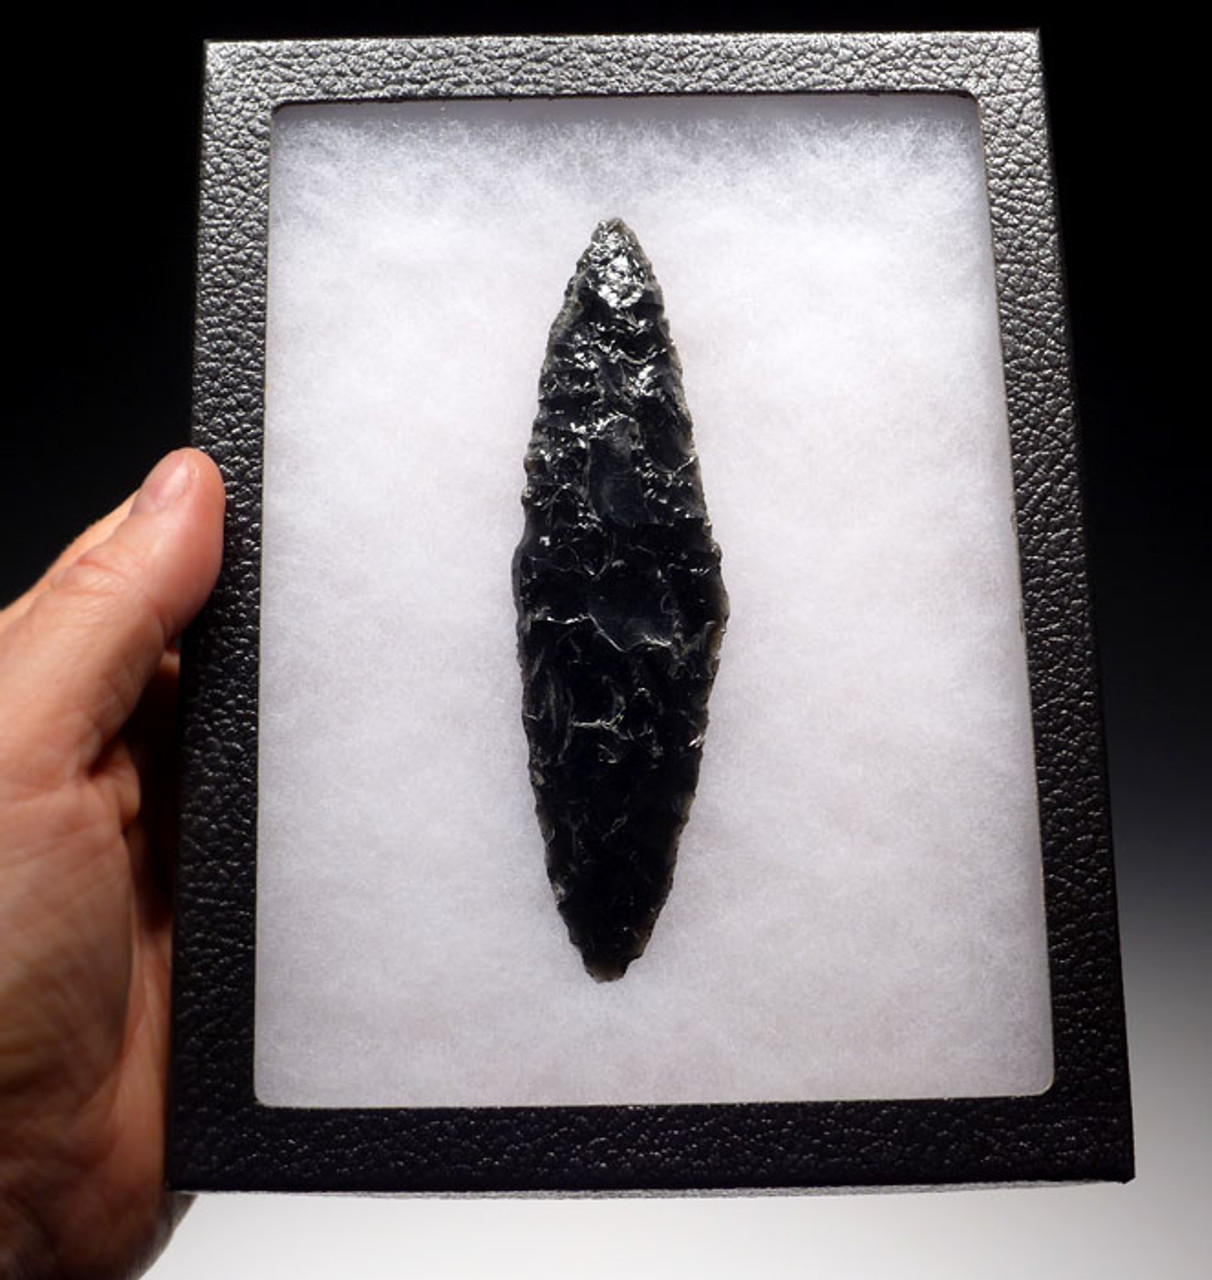 PC221 - EXCEPTIONALLY MADE UNBROKEN AZTEC OBSIDIAN BIFACIAL DAGGER IN CEREMONIAL OLIVE GREEN OBSIDIAN